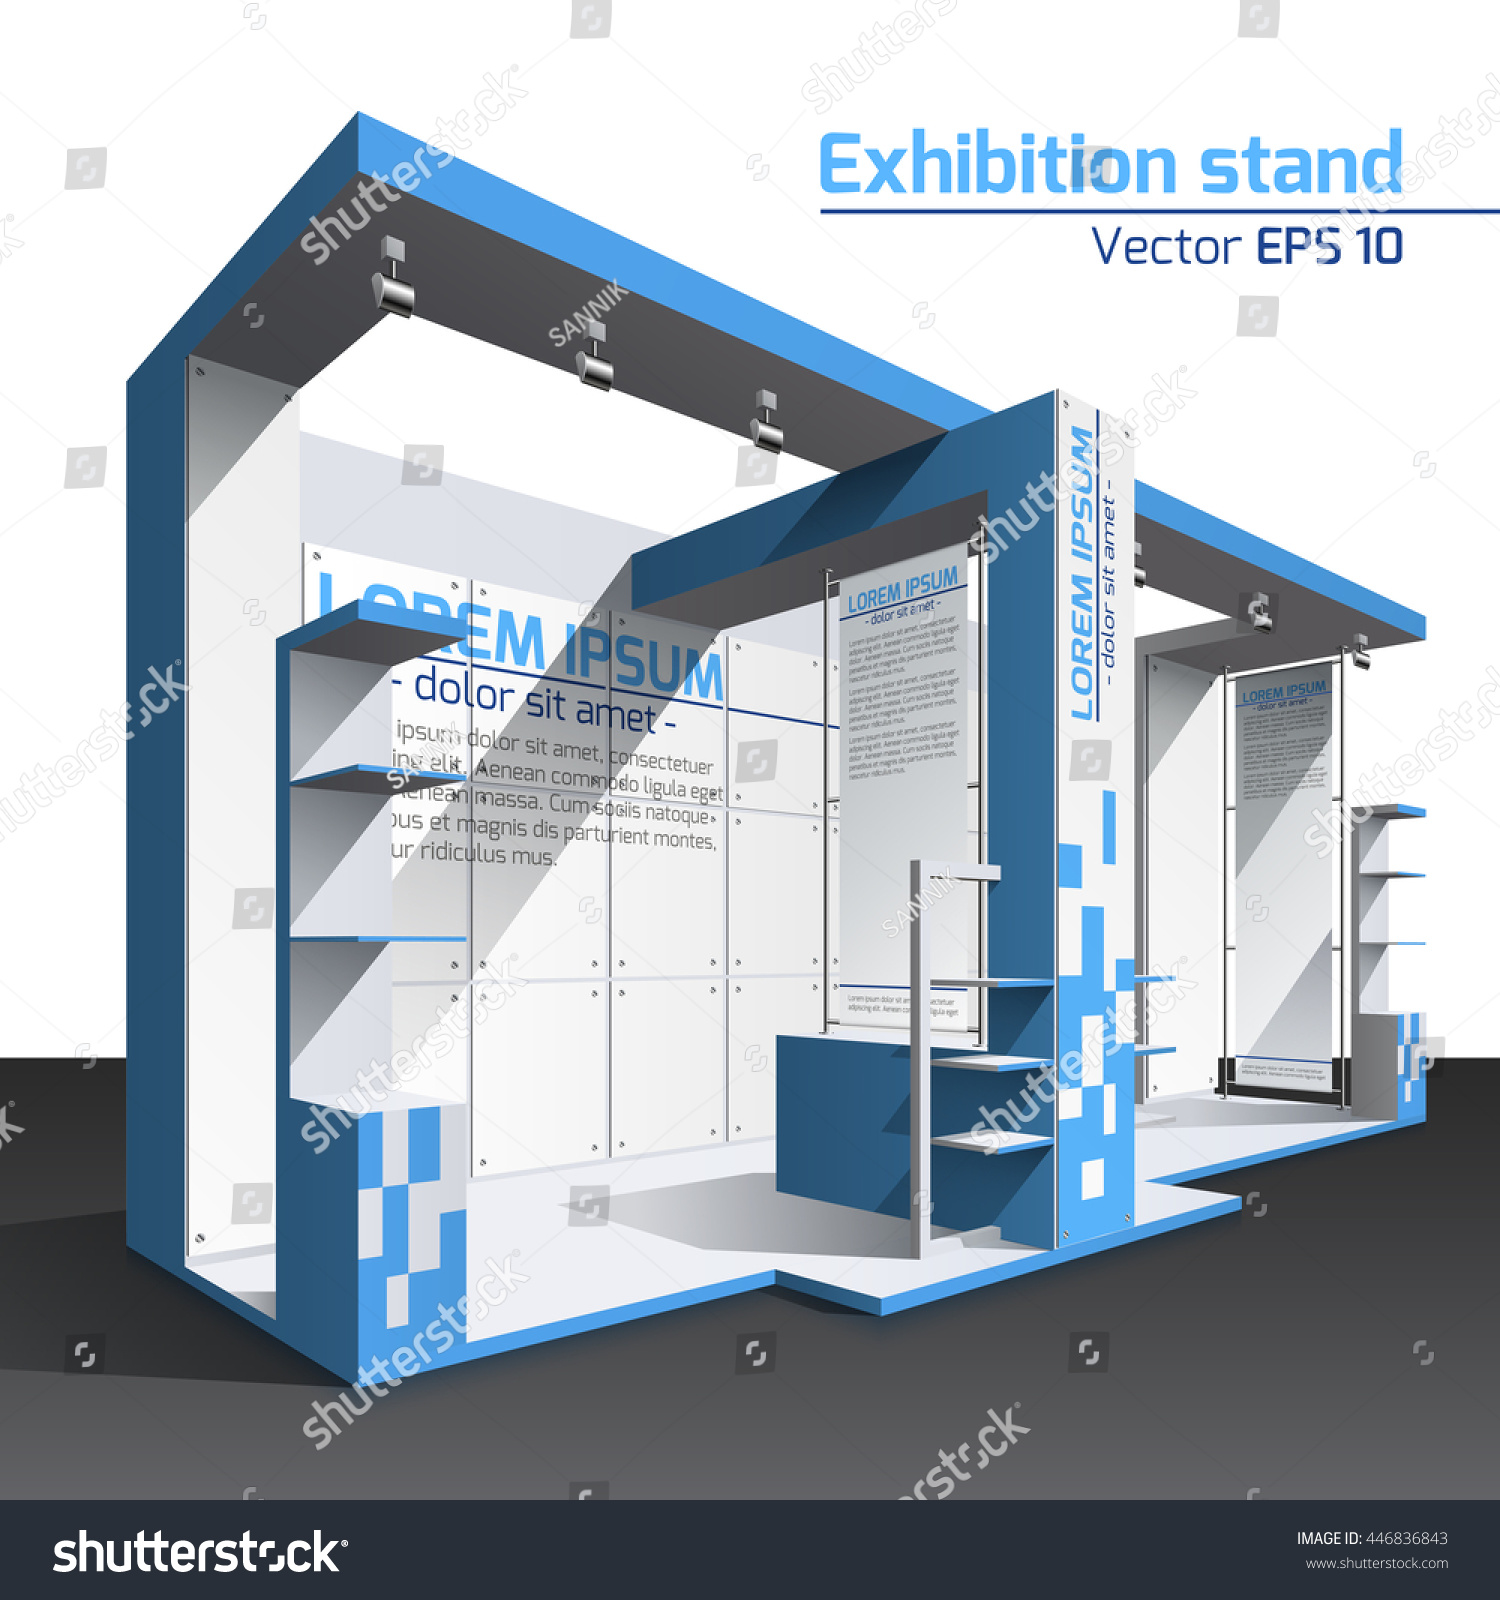 Exhibition Stand Vector : Realistic vector exhibition stand design blue stock